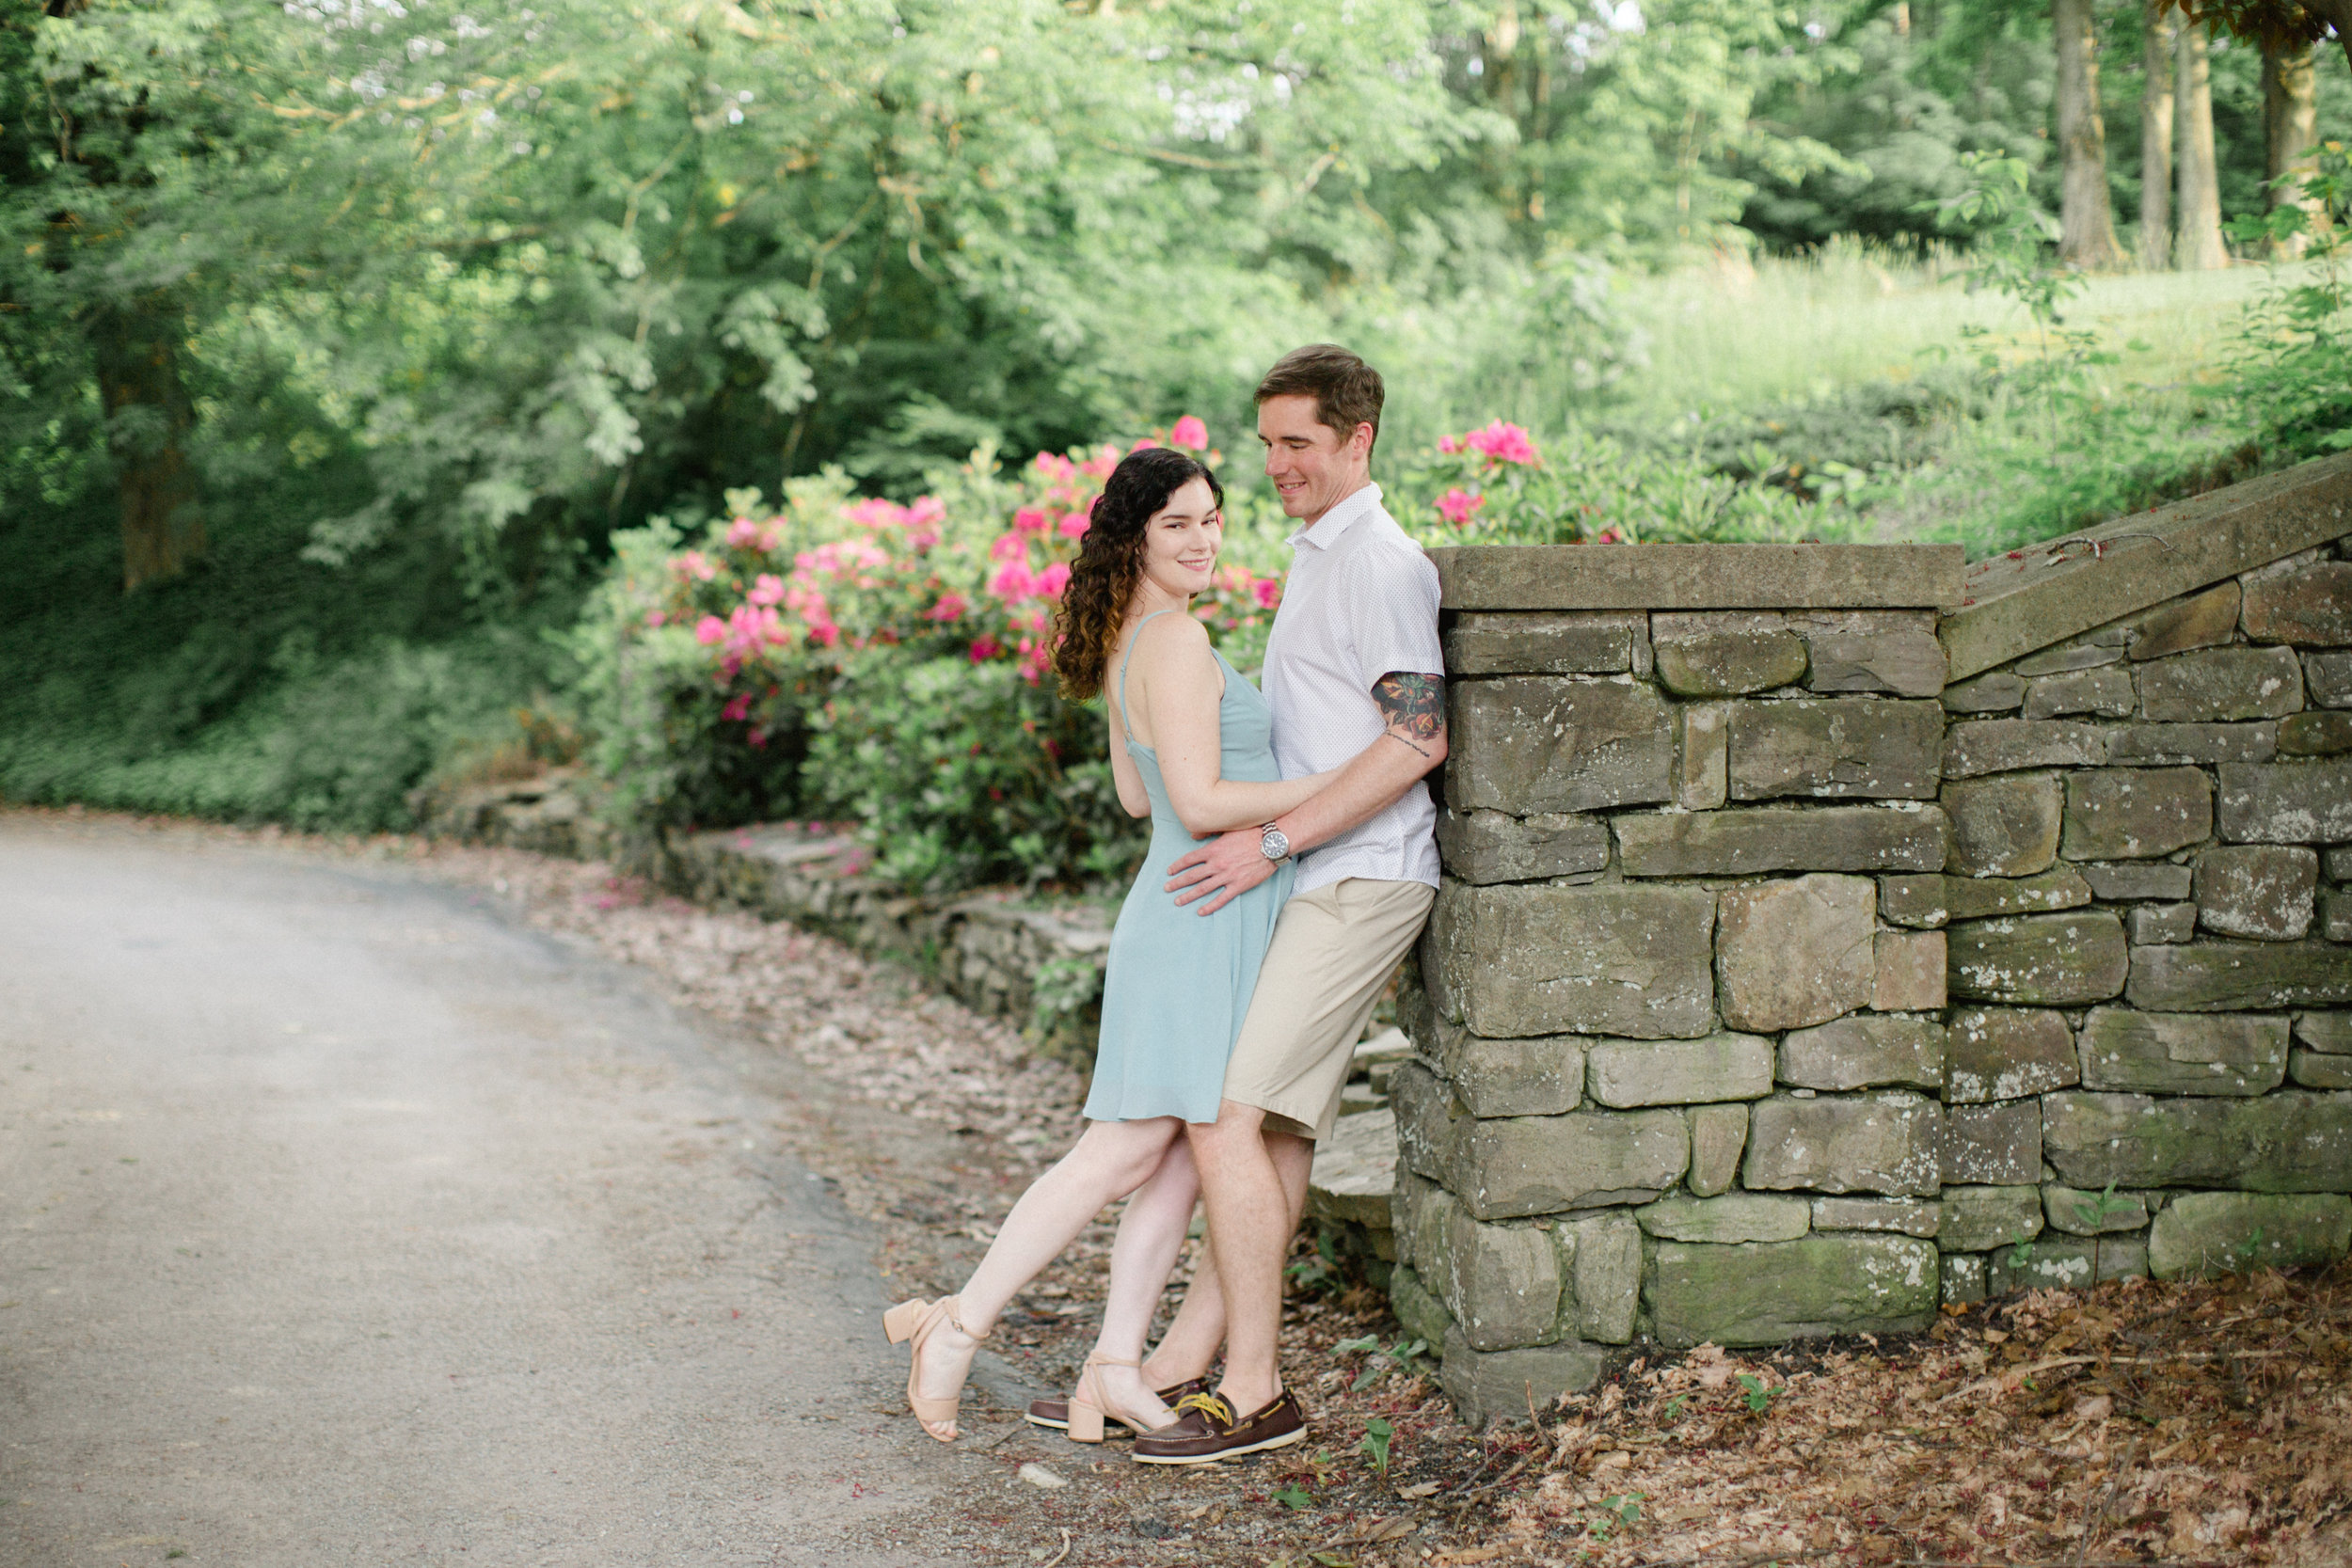 Moscow PA Engagement Session Photos_JDP-28.jpg